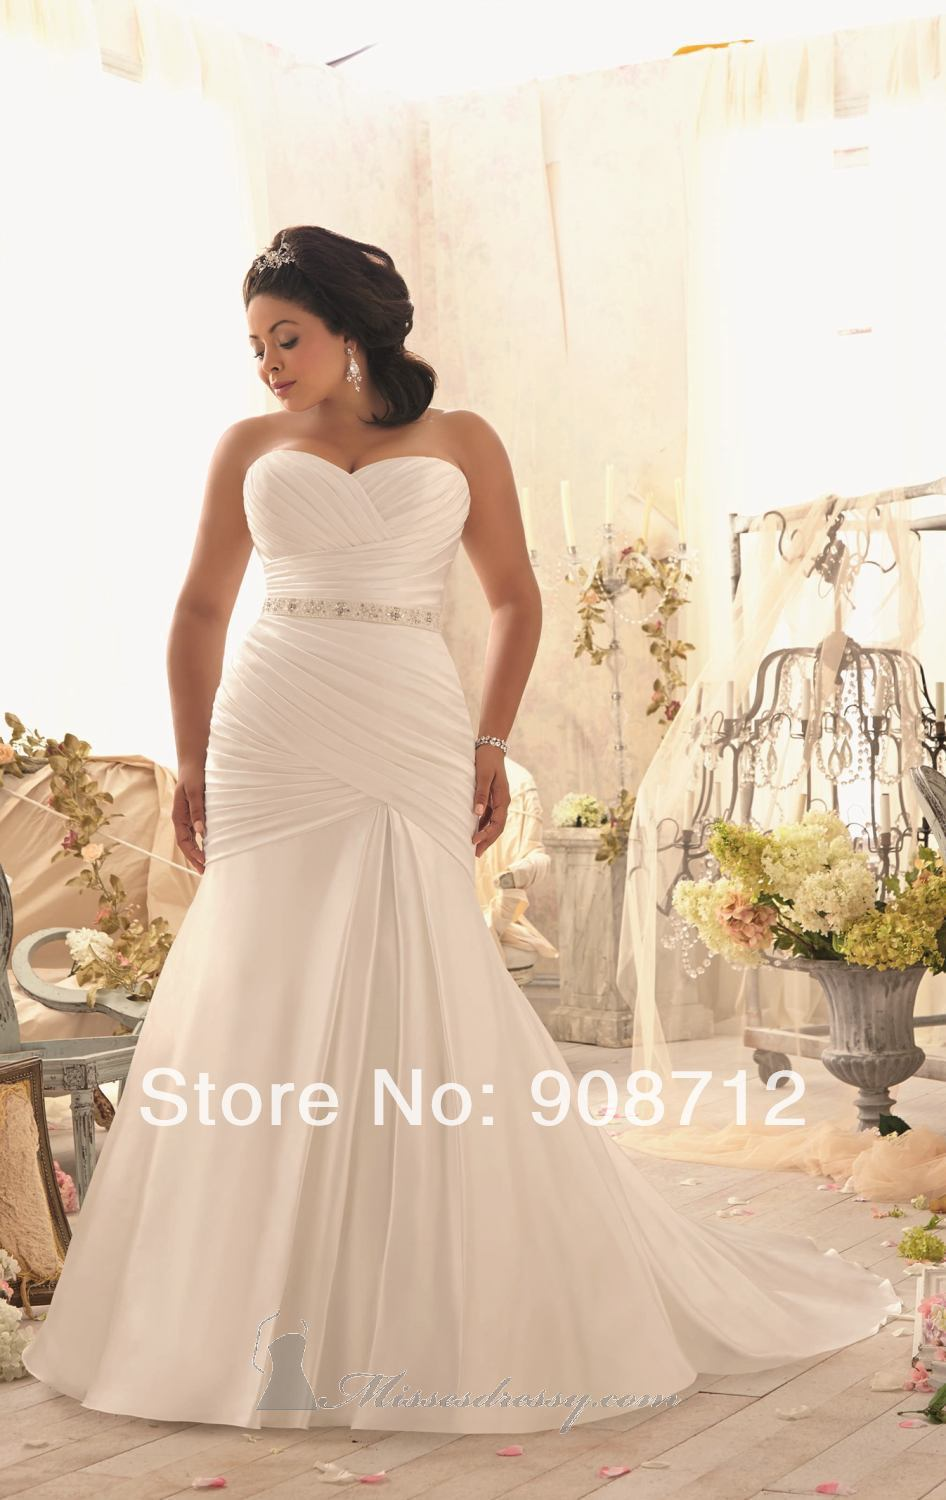 Hot Sell! Fit and flare Strapless Satin Designer Stunning ...